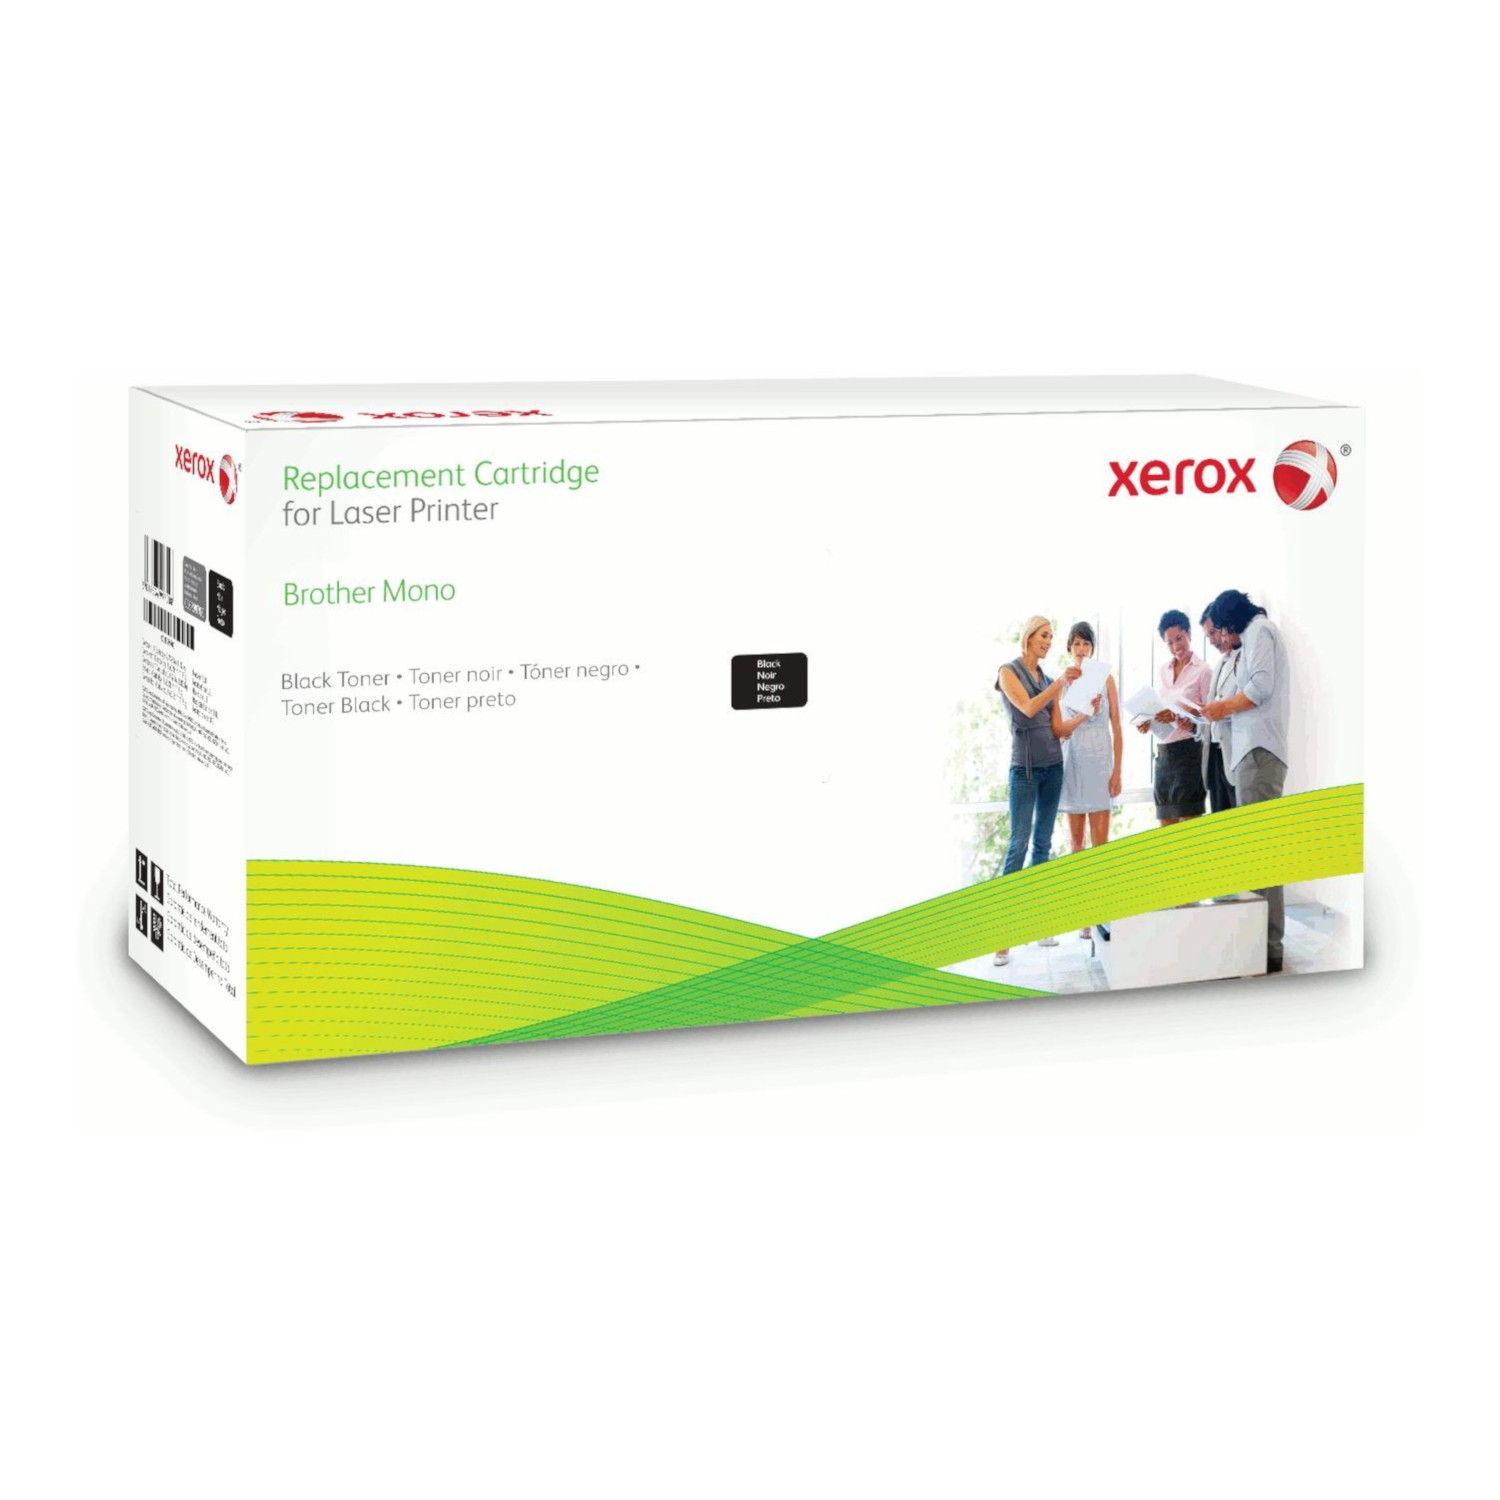 Toner Xerox 006r03134 Compatible Brother Dr2200